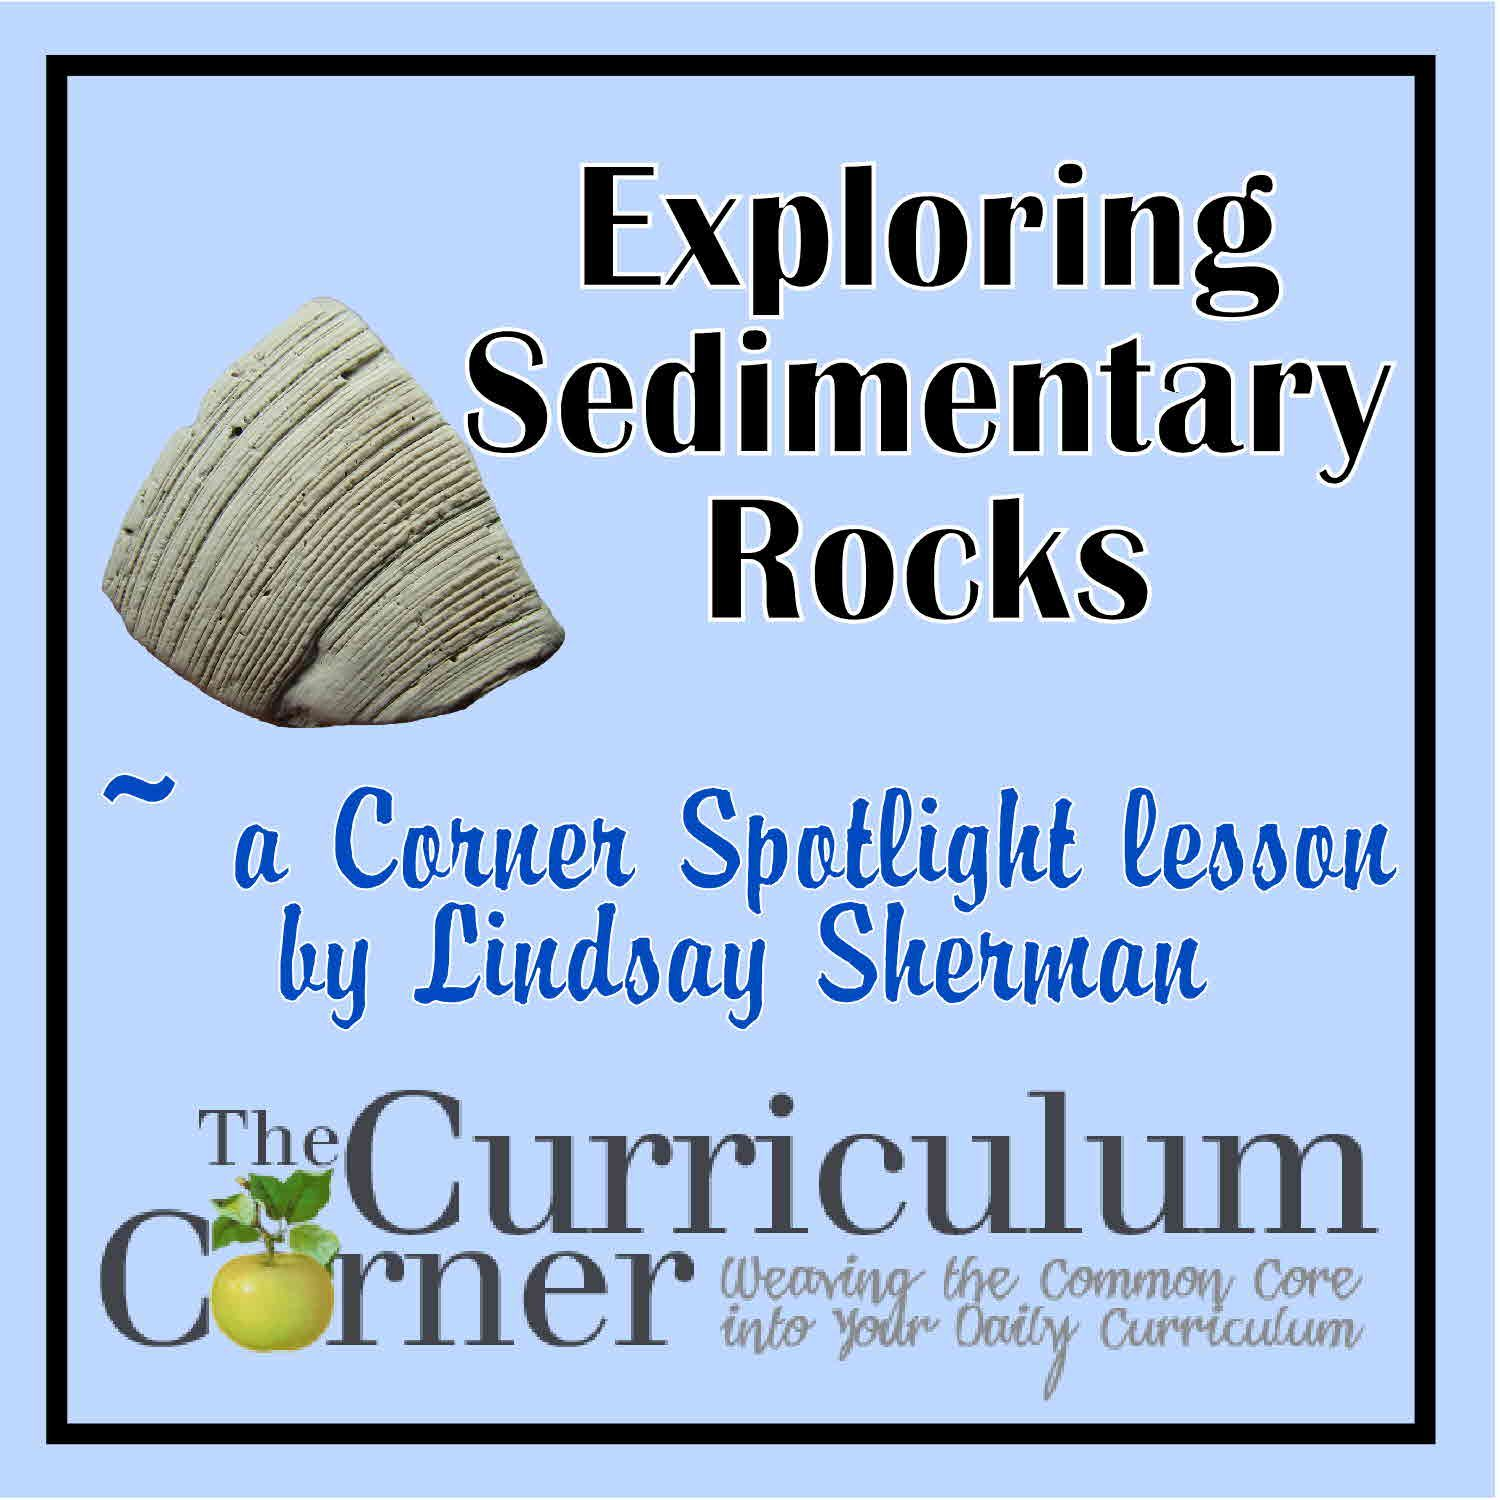 The principal objectives in studying sedimentary rocks